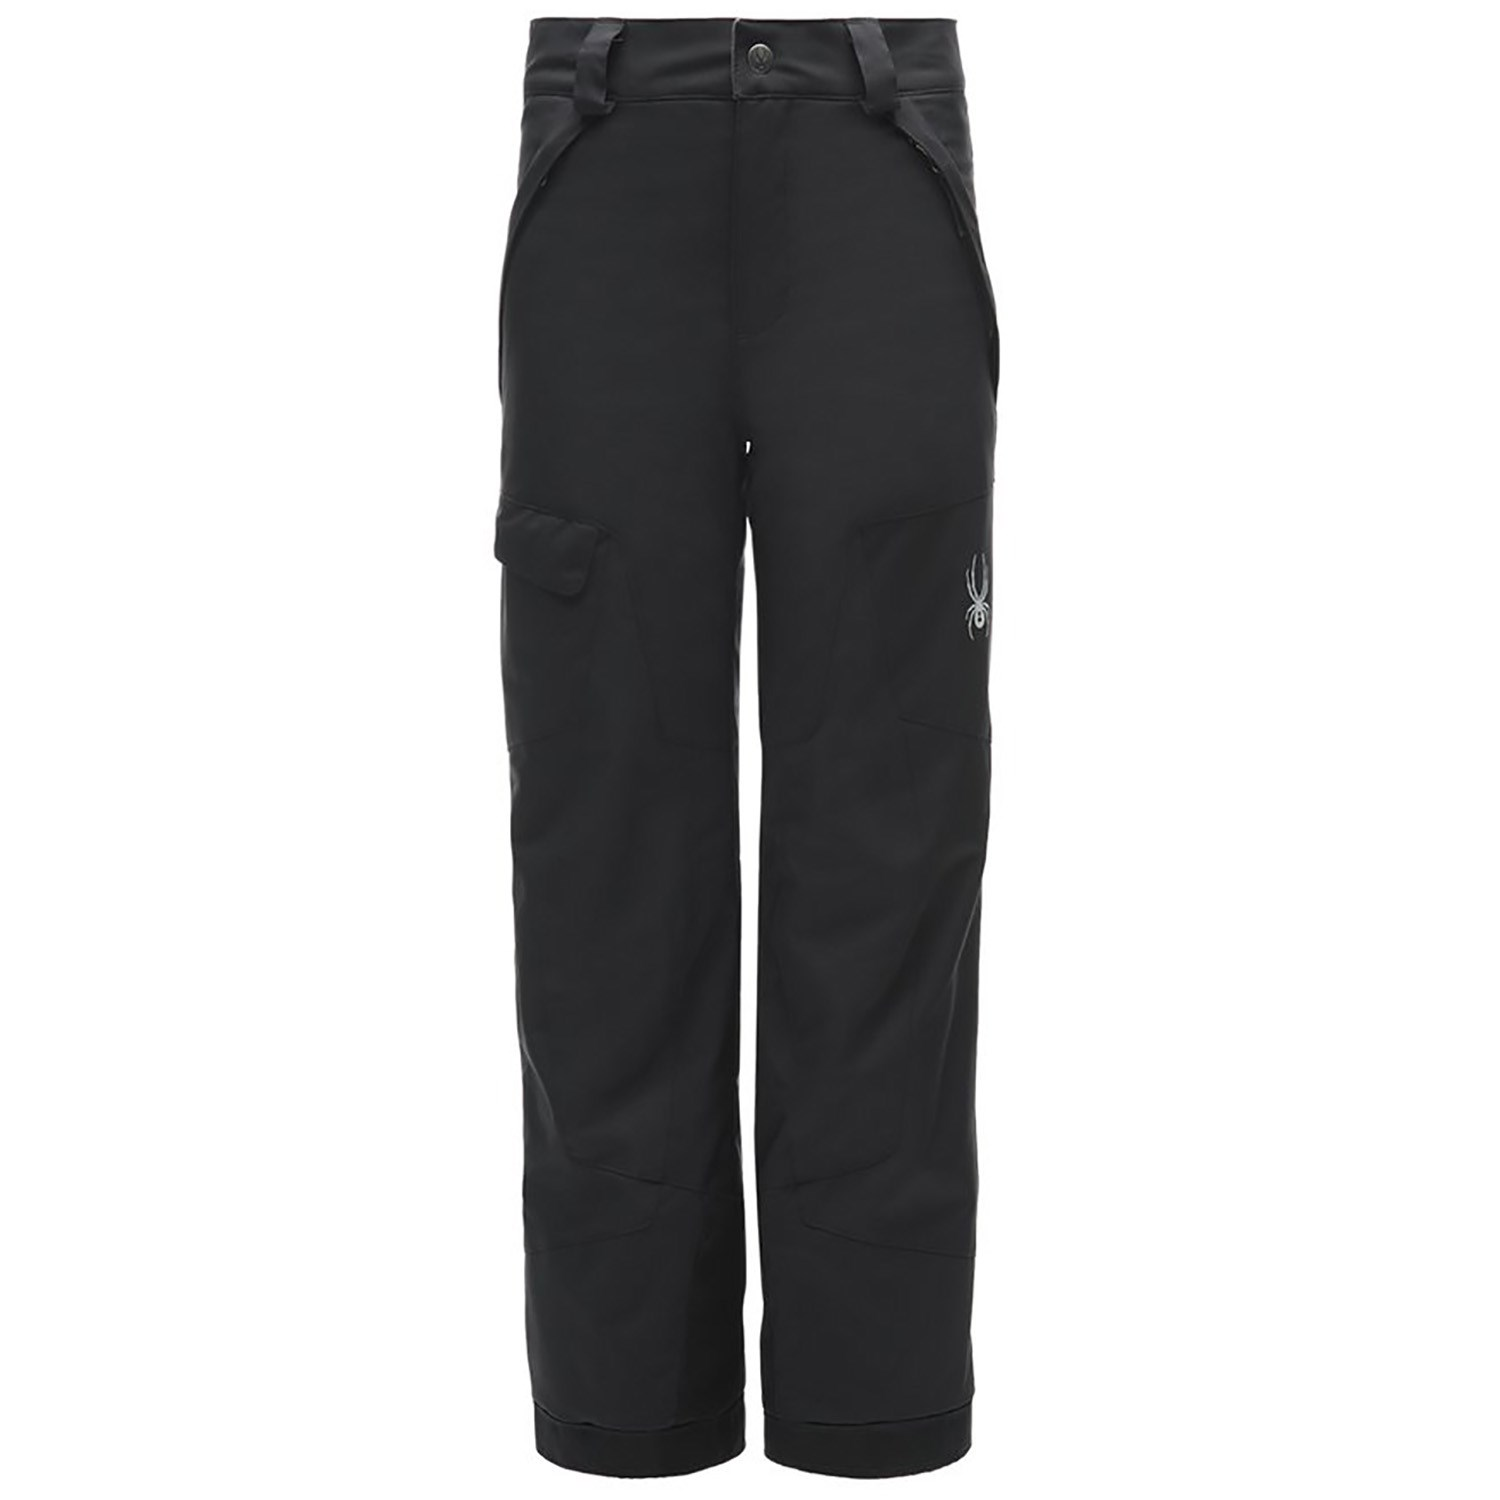 Spyder Action Pant